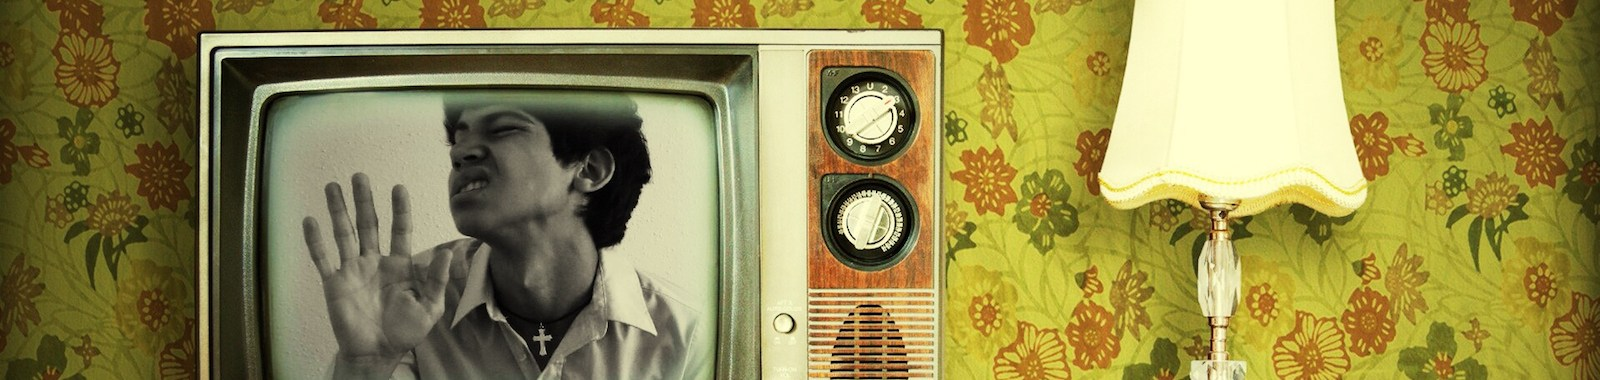 Young Man In Retro Styled Television Set